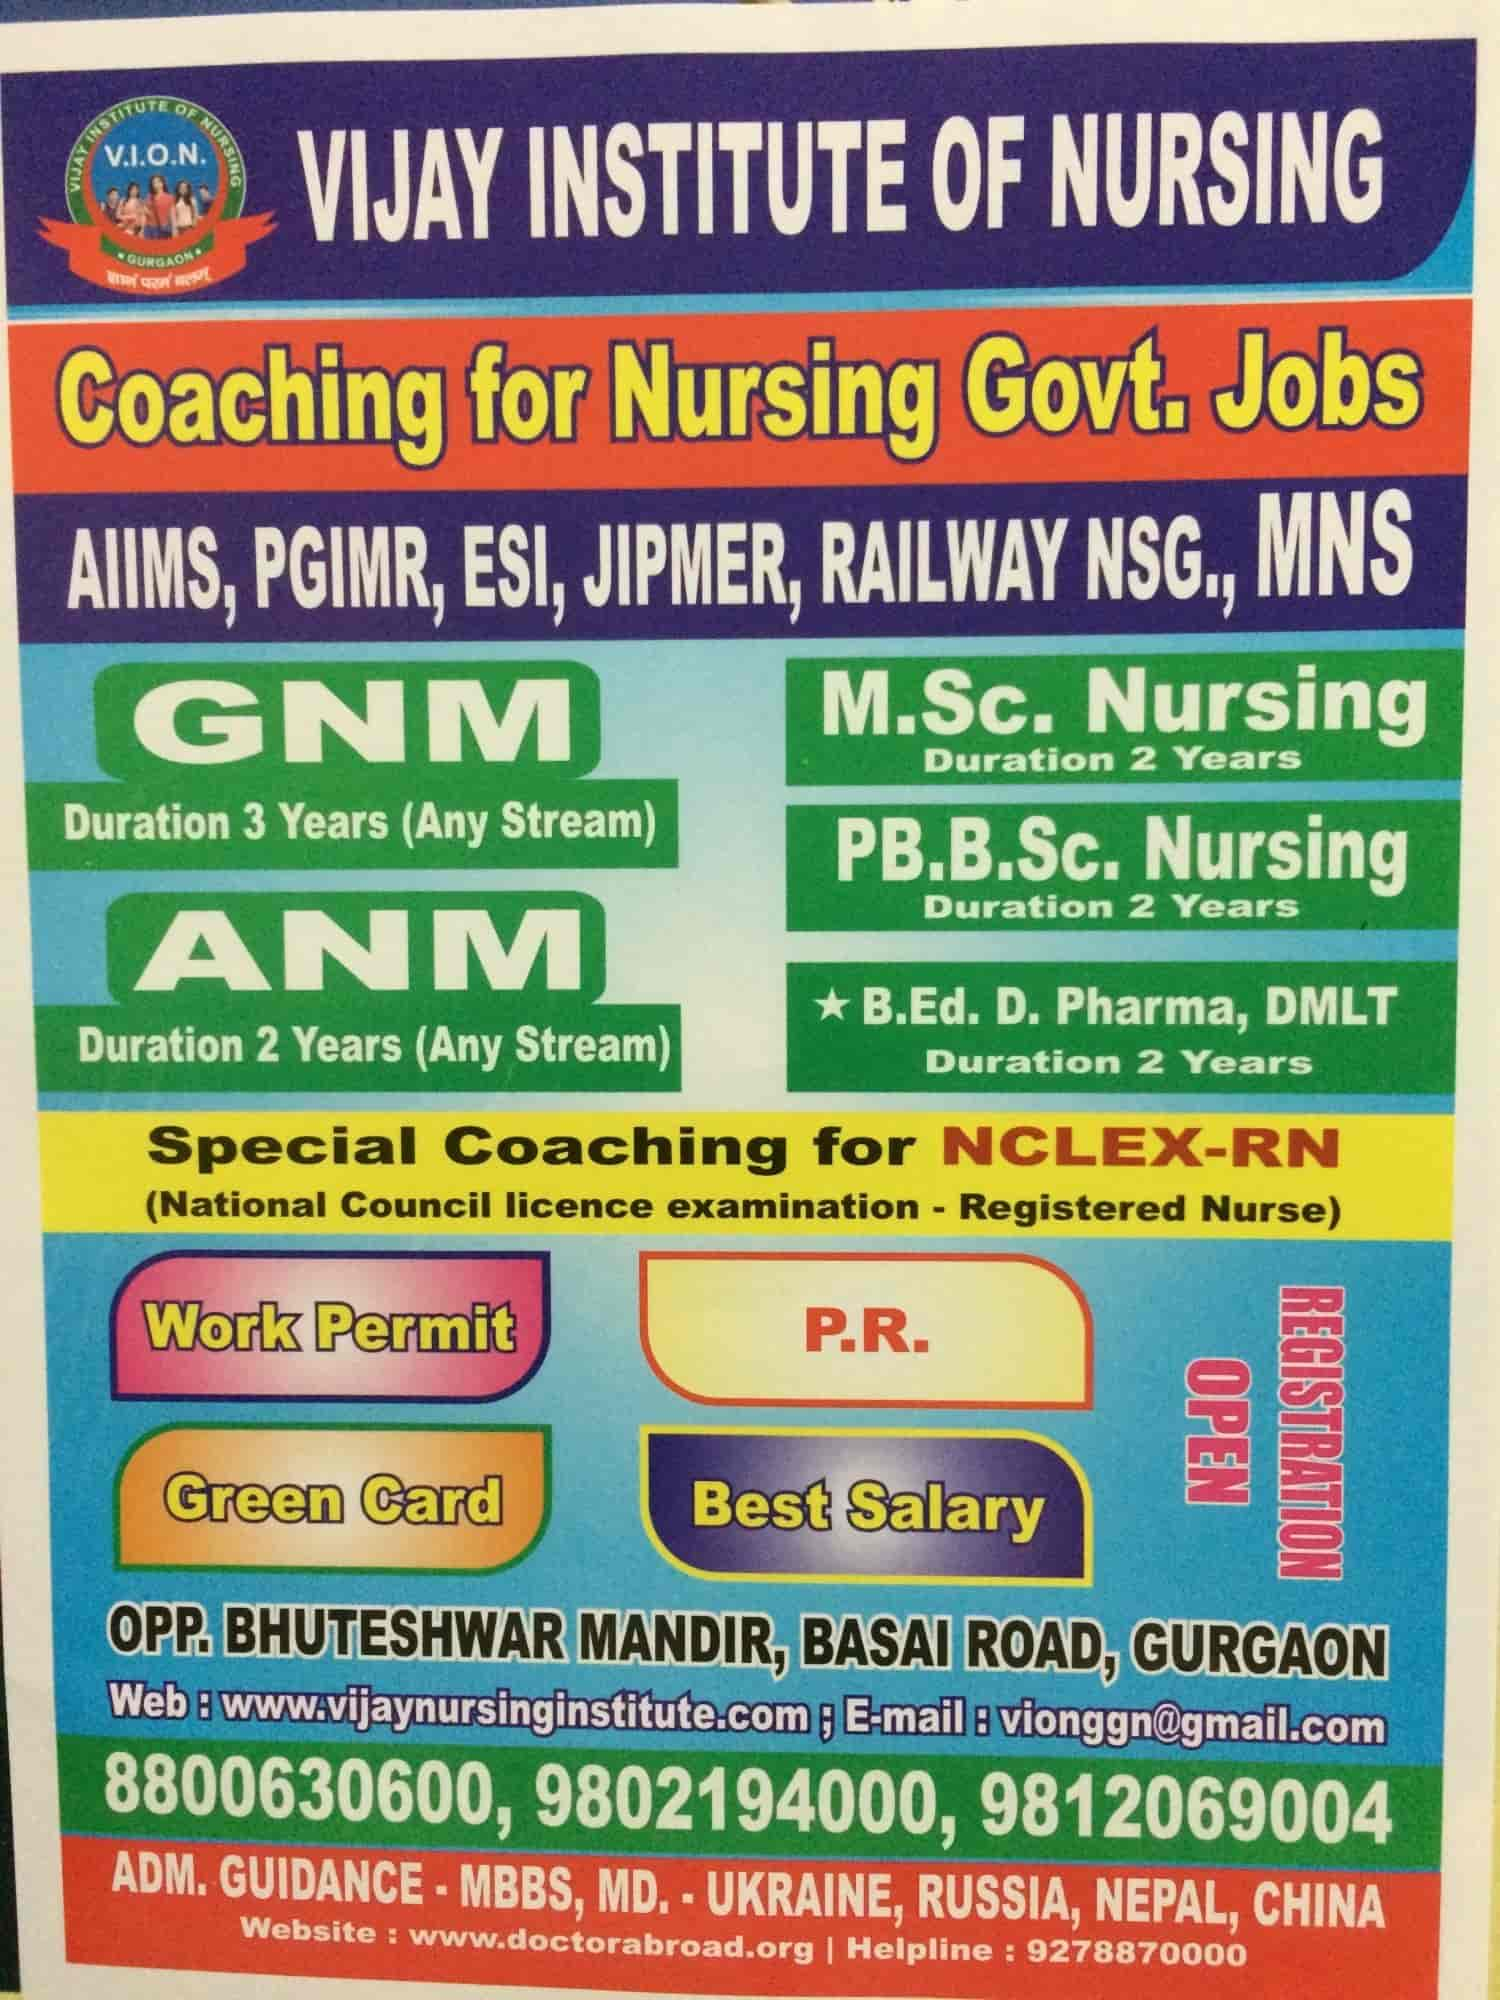 Vijay Institute Of Nursing, Basai Road - Nursing Institutes